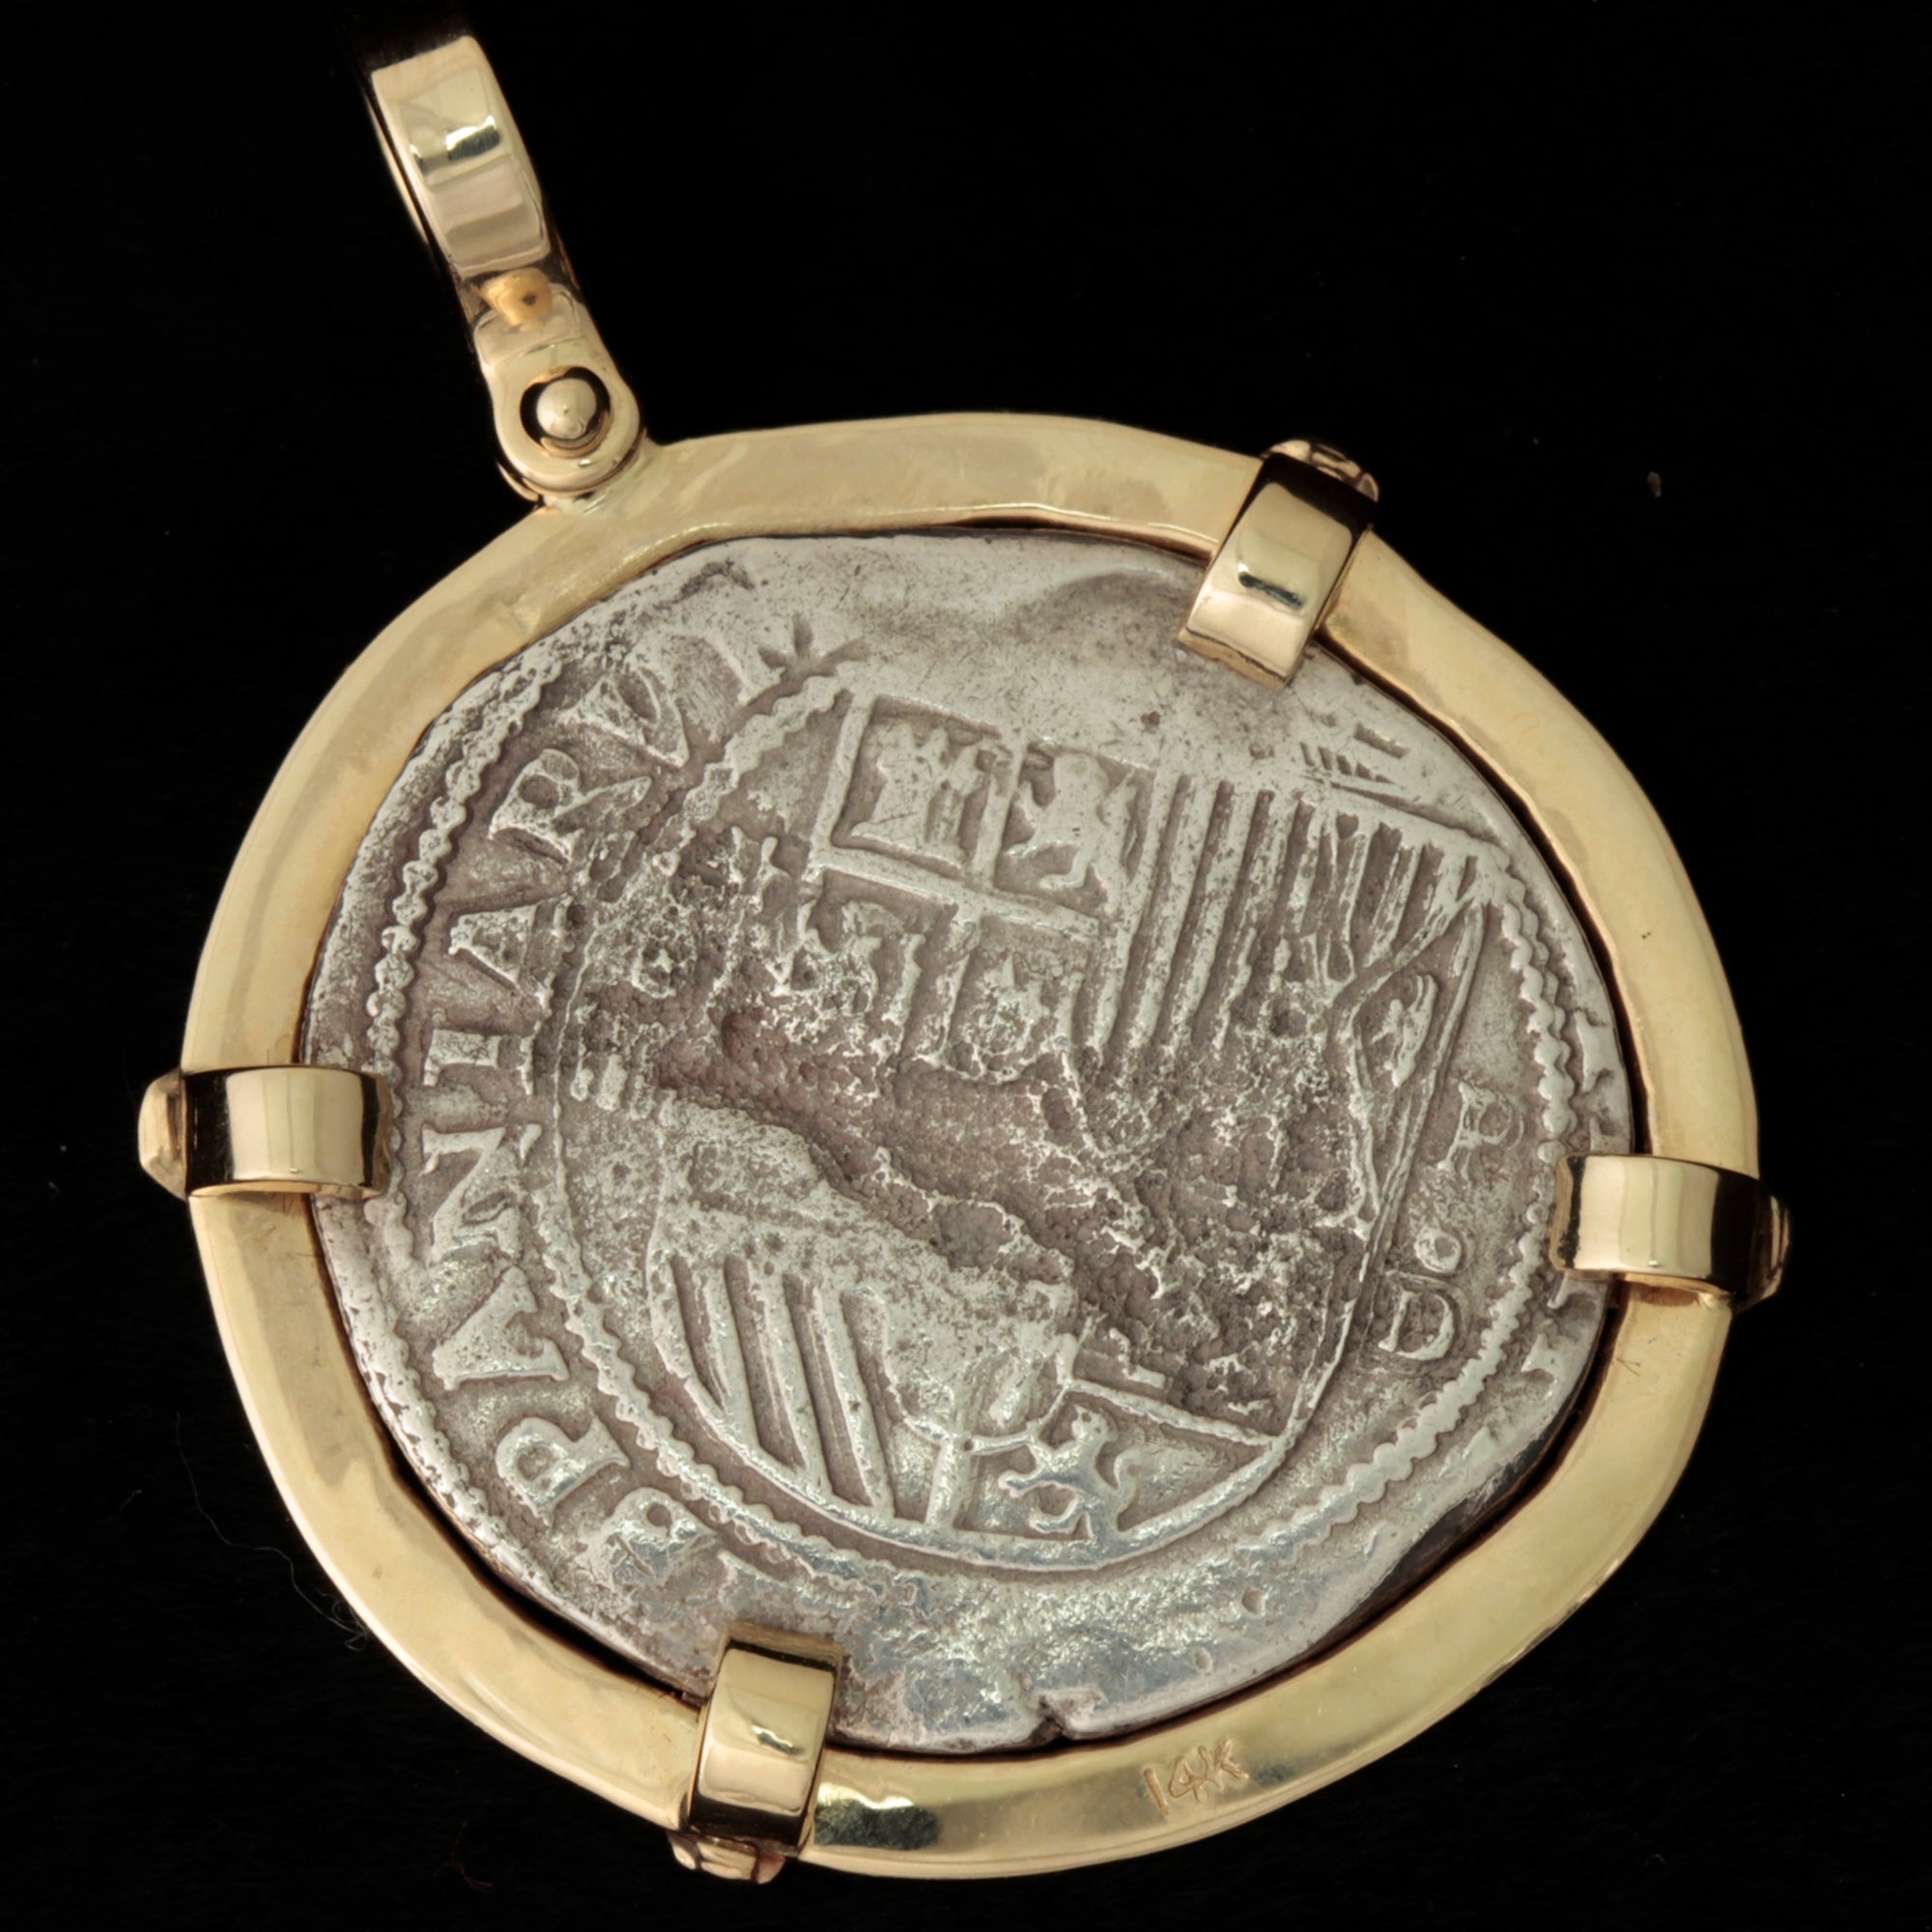 f194c6677 Rare, Authentic Atocha Silver Coin, Grade 1, 4 Reales, Mounted in 14K with  Diamond Accents